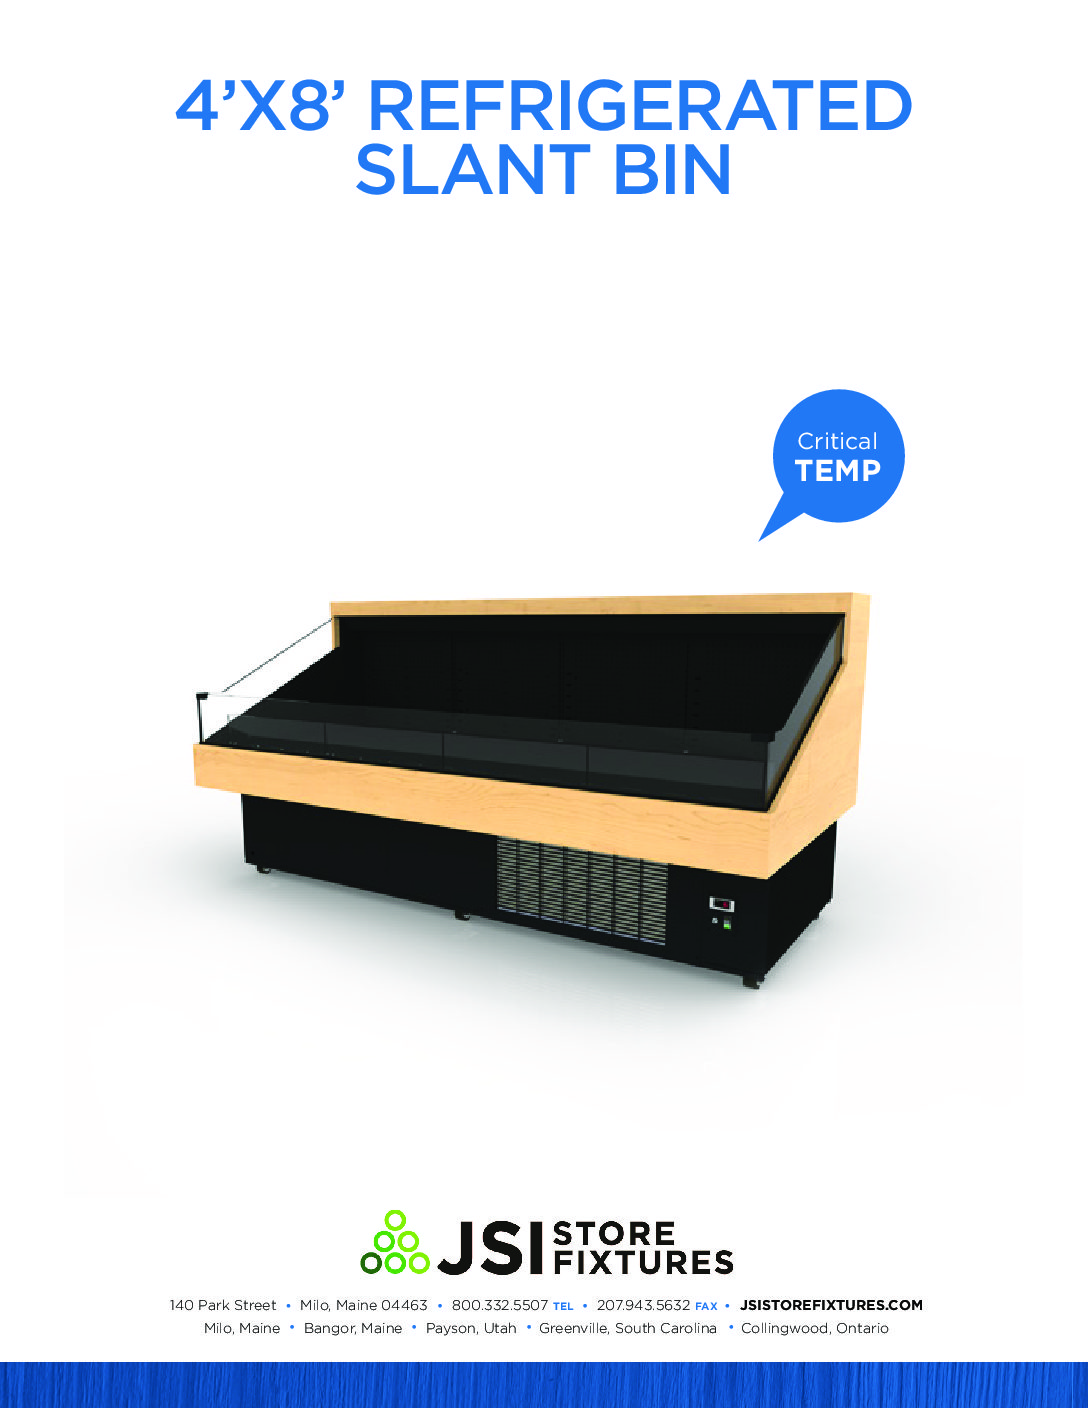 4'x8' Refrigerated Slant Bin Spec Sheet